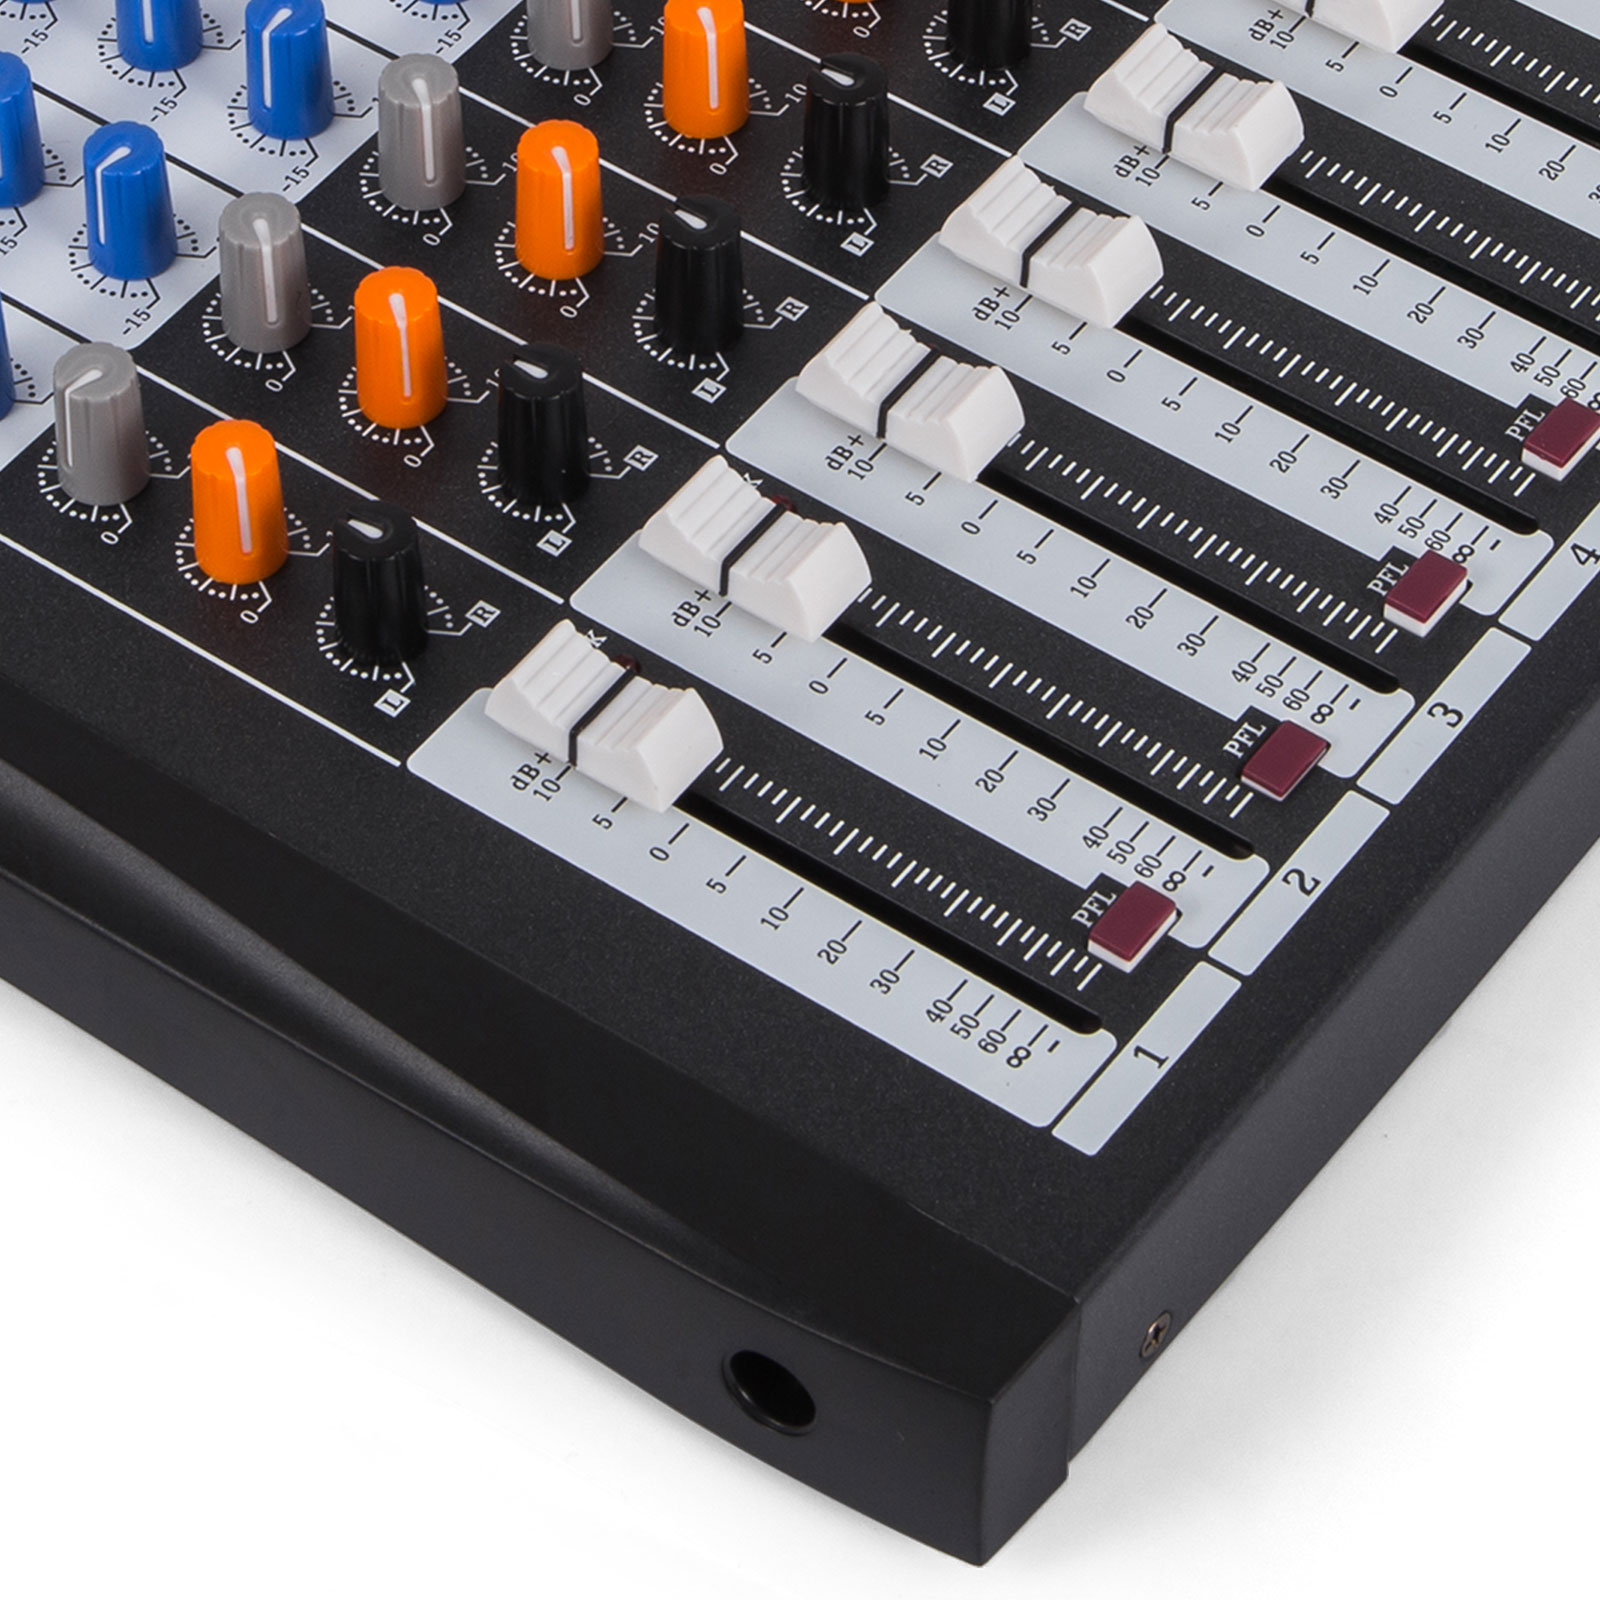 12 channel sound card digital audio mixer mixing console for recording live 882511196119 ebay. Black Bedroom Furniture Sets. Home Design Ideas